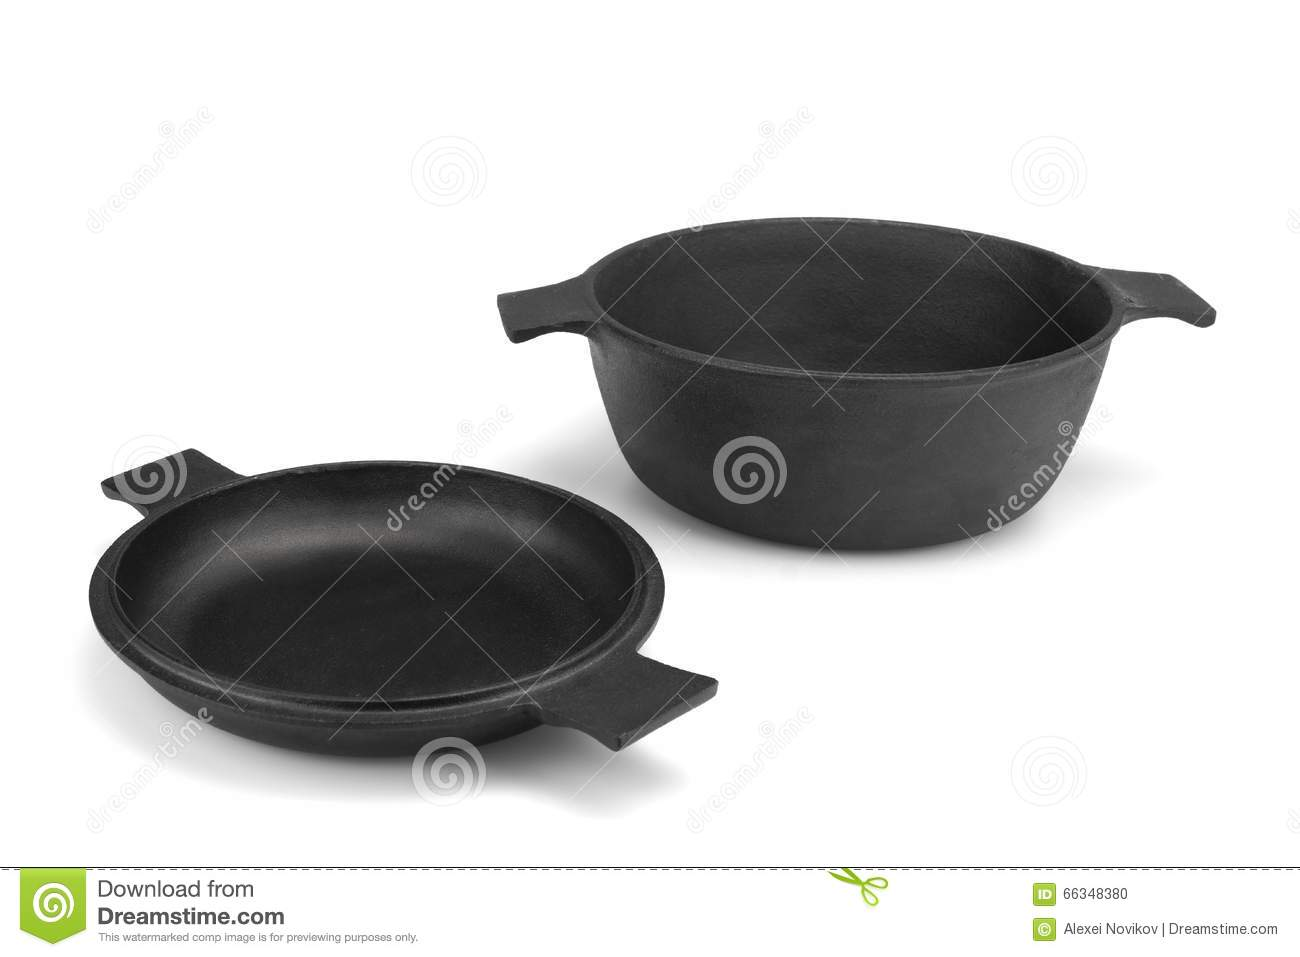 How to Clean a Cast Iron Dutch Oven How to Clean a Cast Iron Dutch Oven new pics